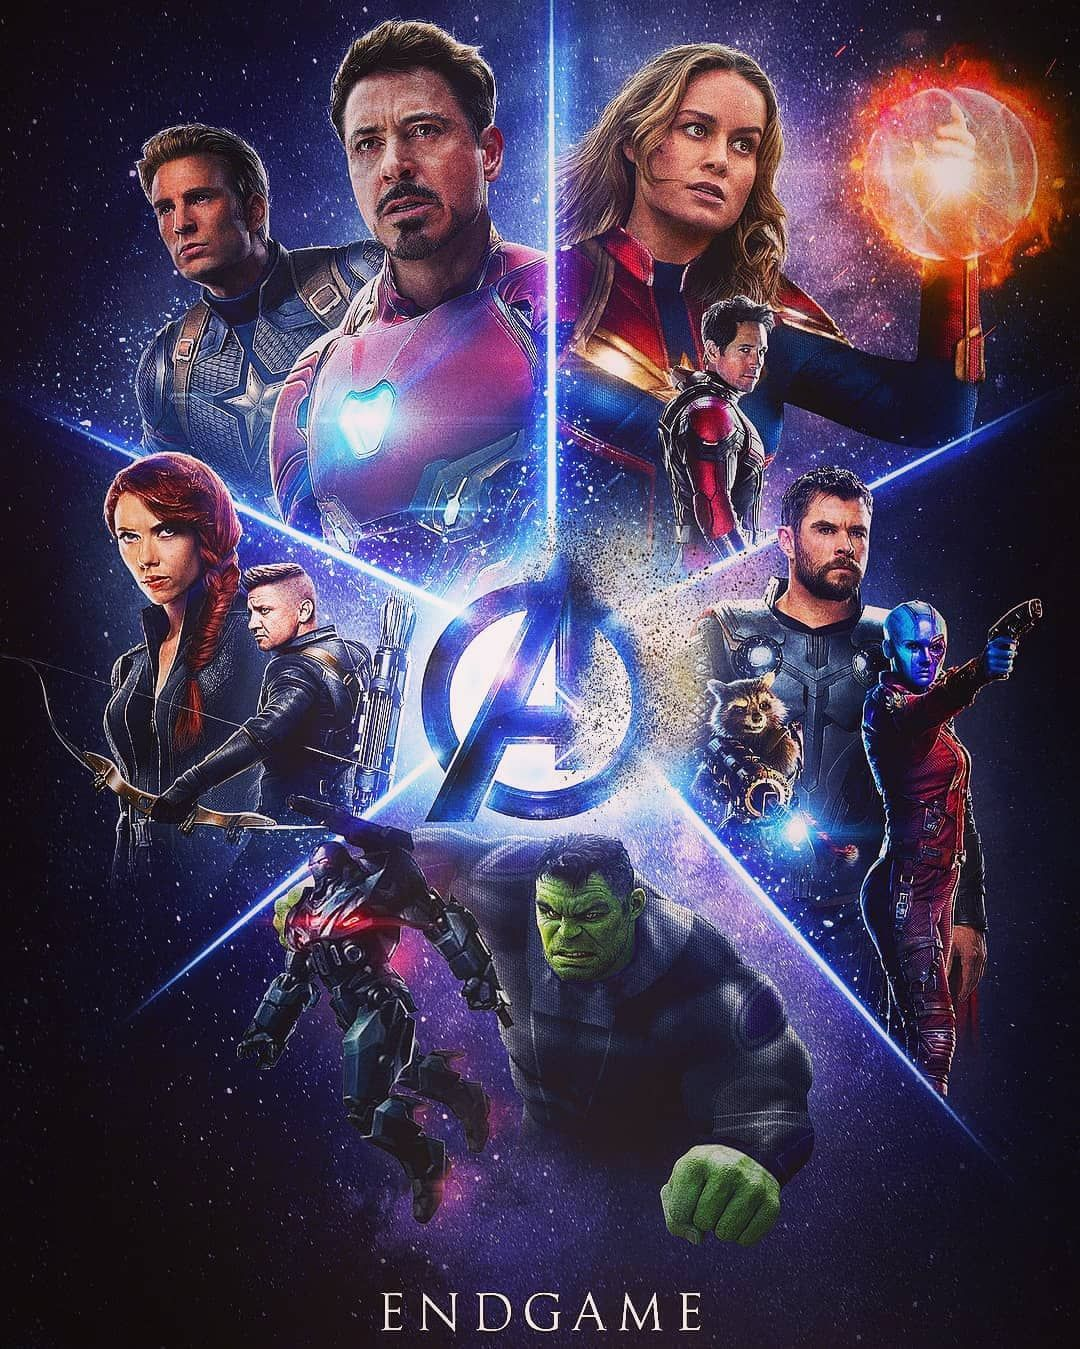 Avengers 4 Gonna Be The Best Avengers And The Best Work Of Russuo Brother Avengers4 Iron Man Captainamerica Captainmarve Marvel Avengers Vengadores Marvel